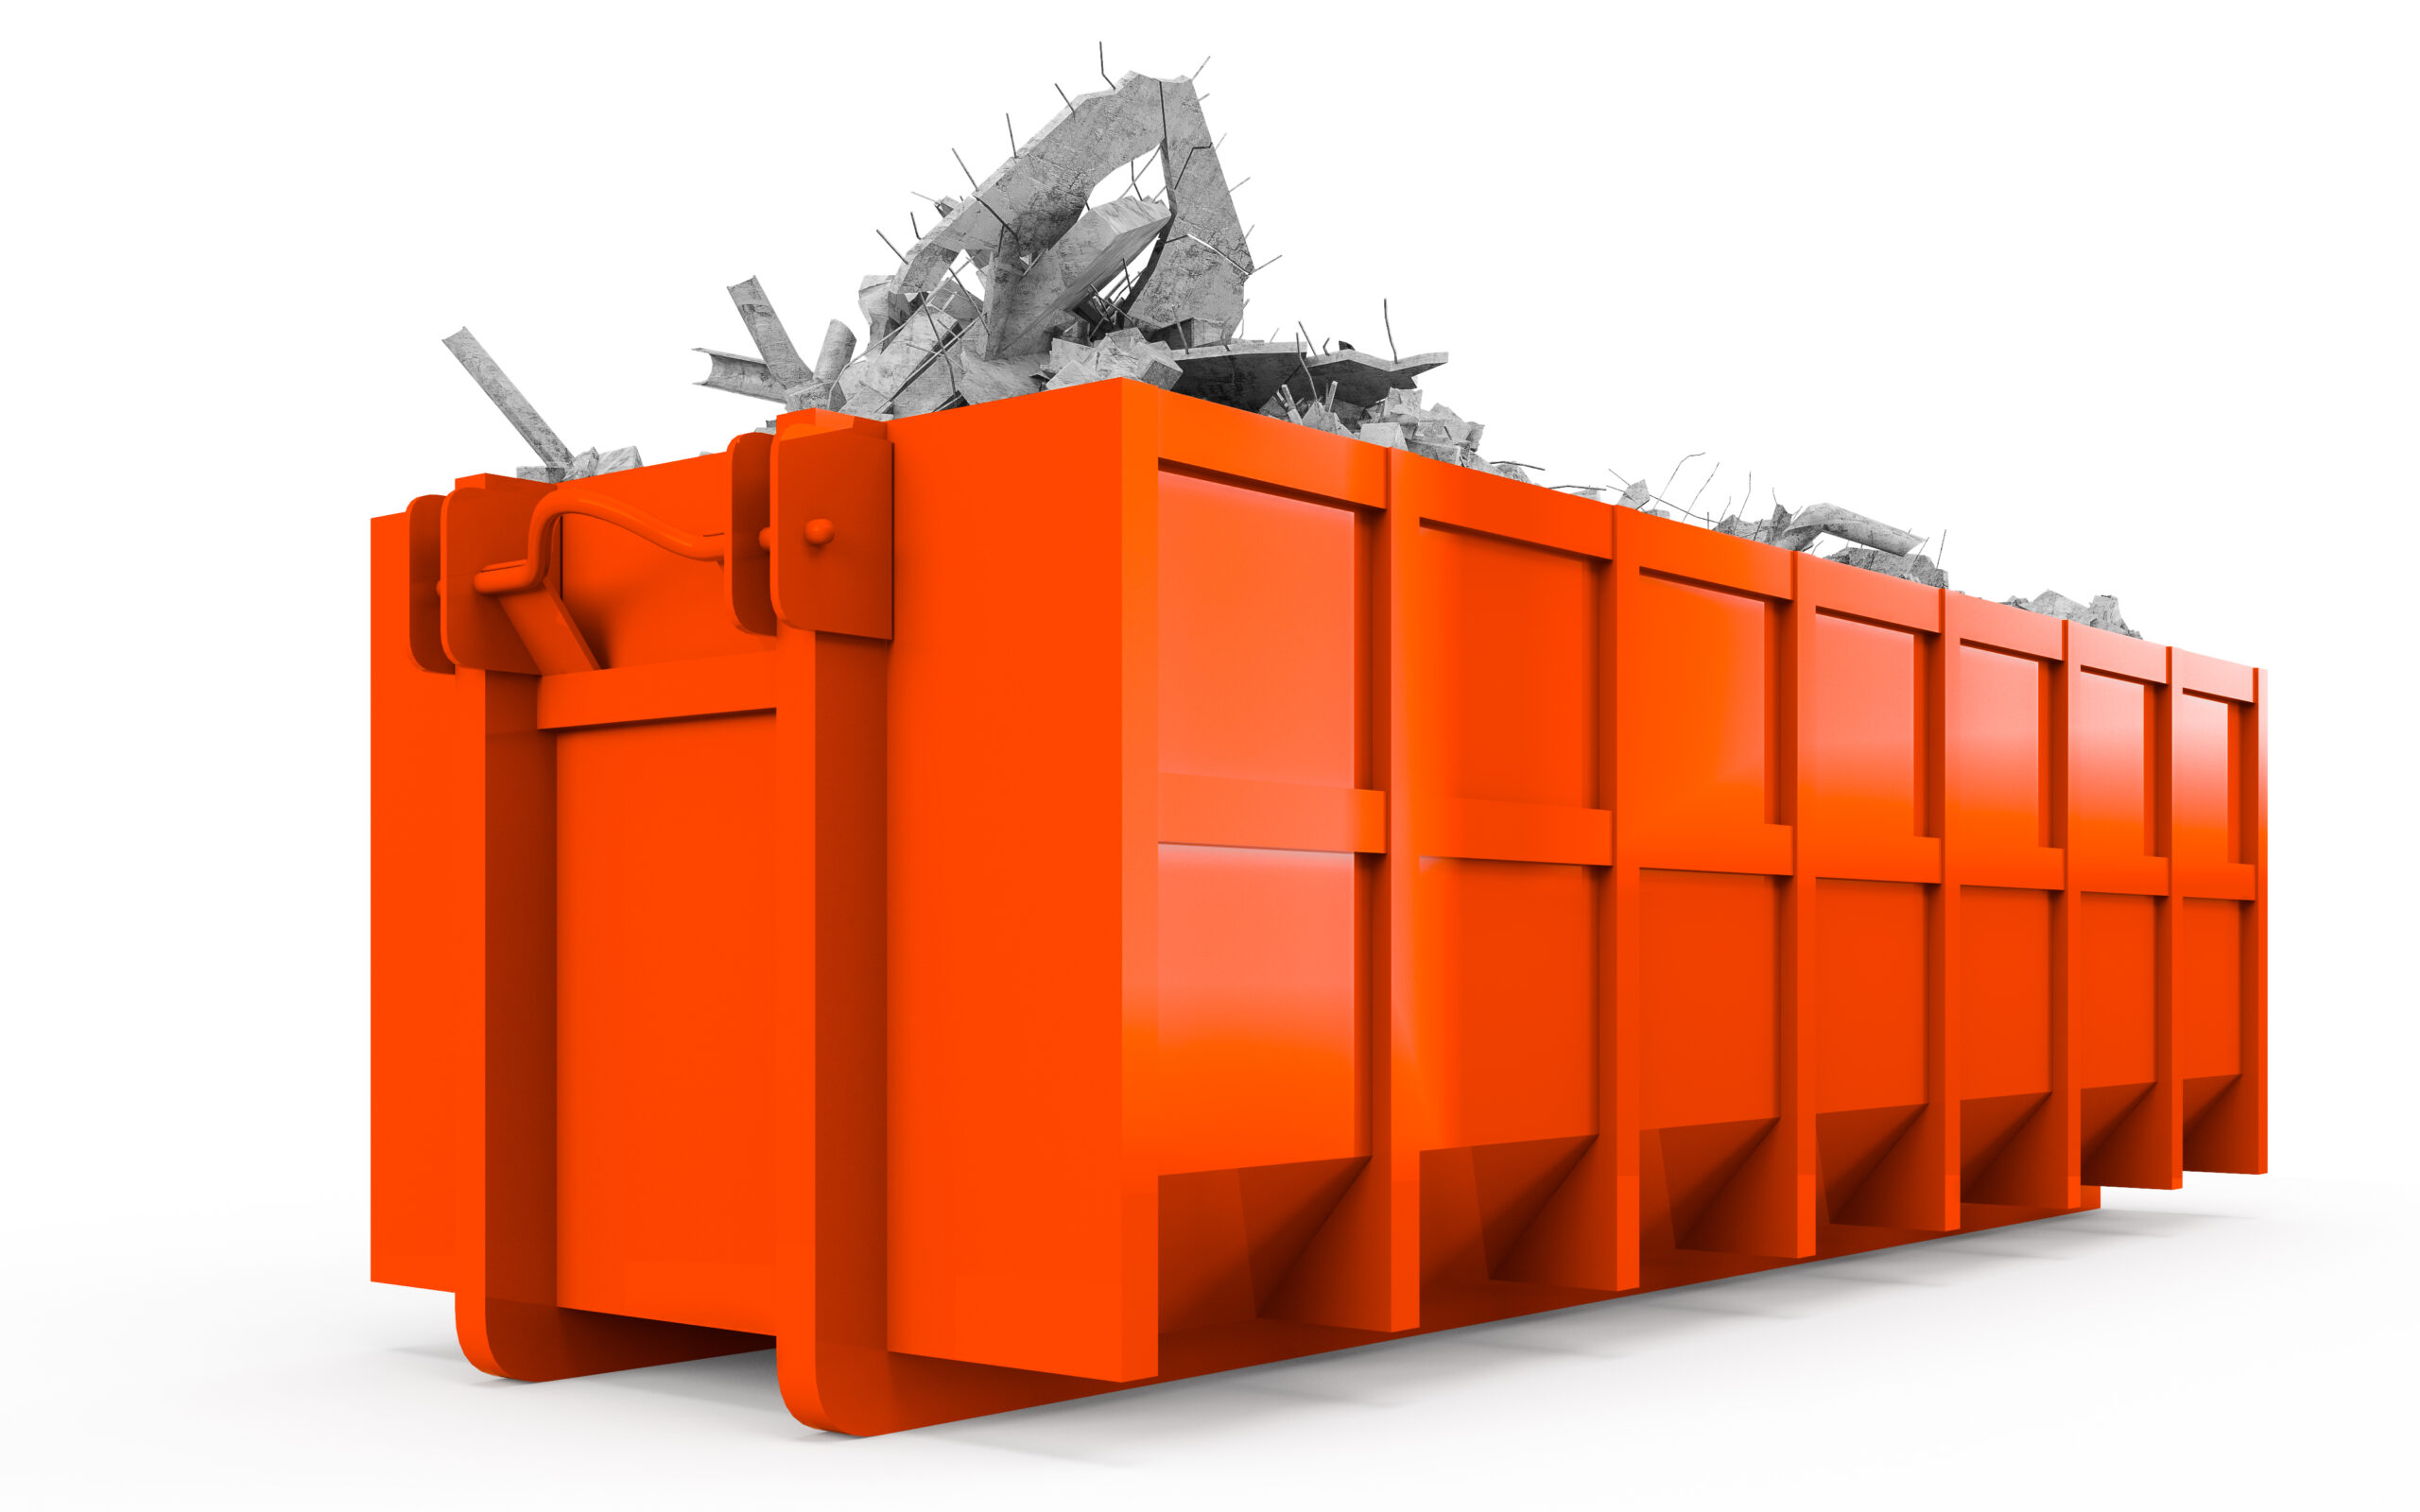 3D rendering of Orange Red rubble container perspective front view isolated on white background